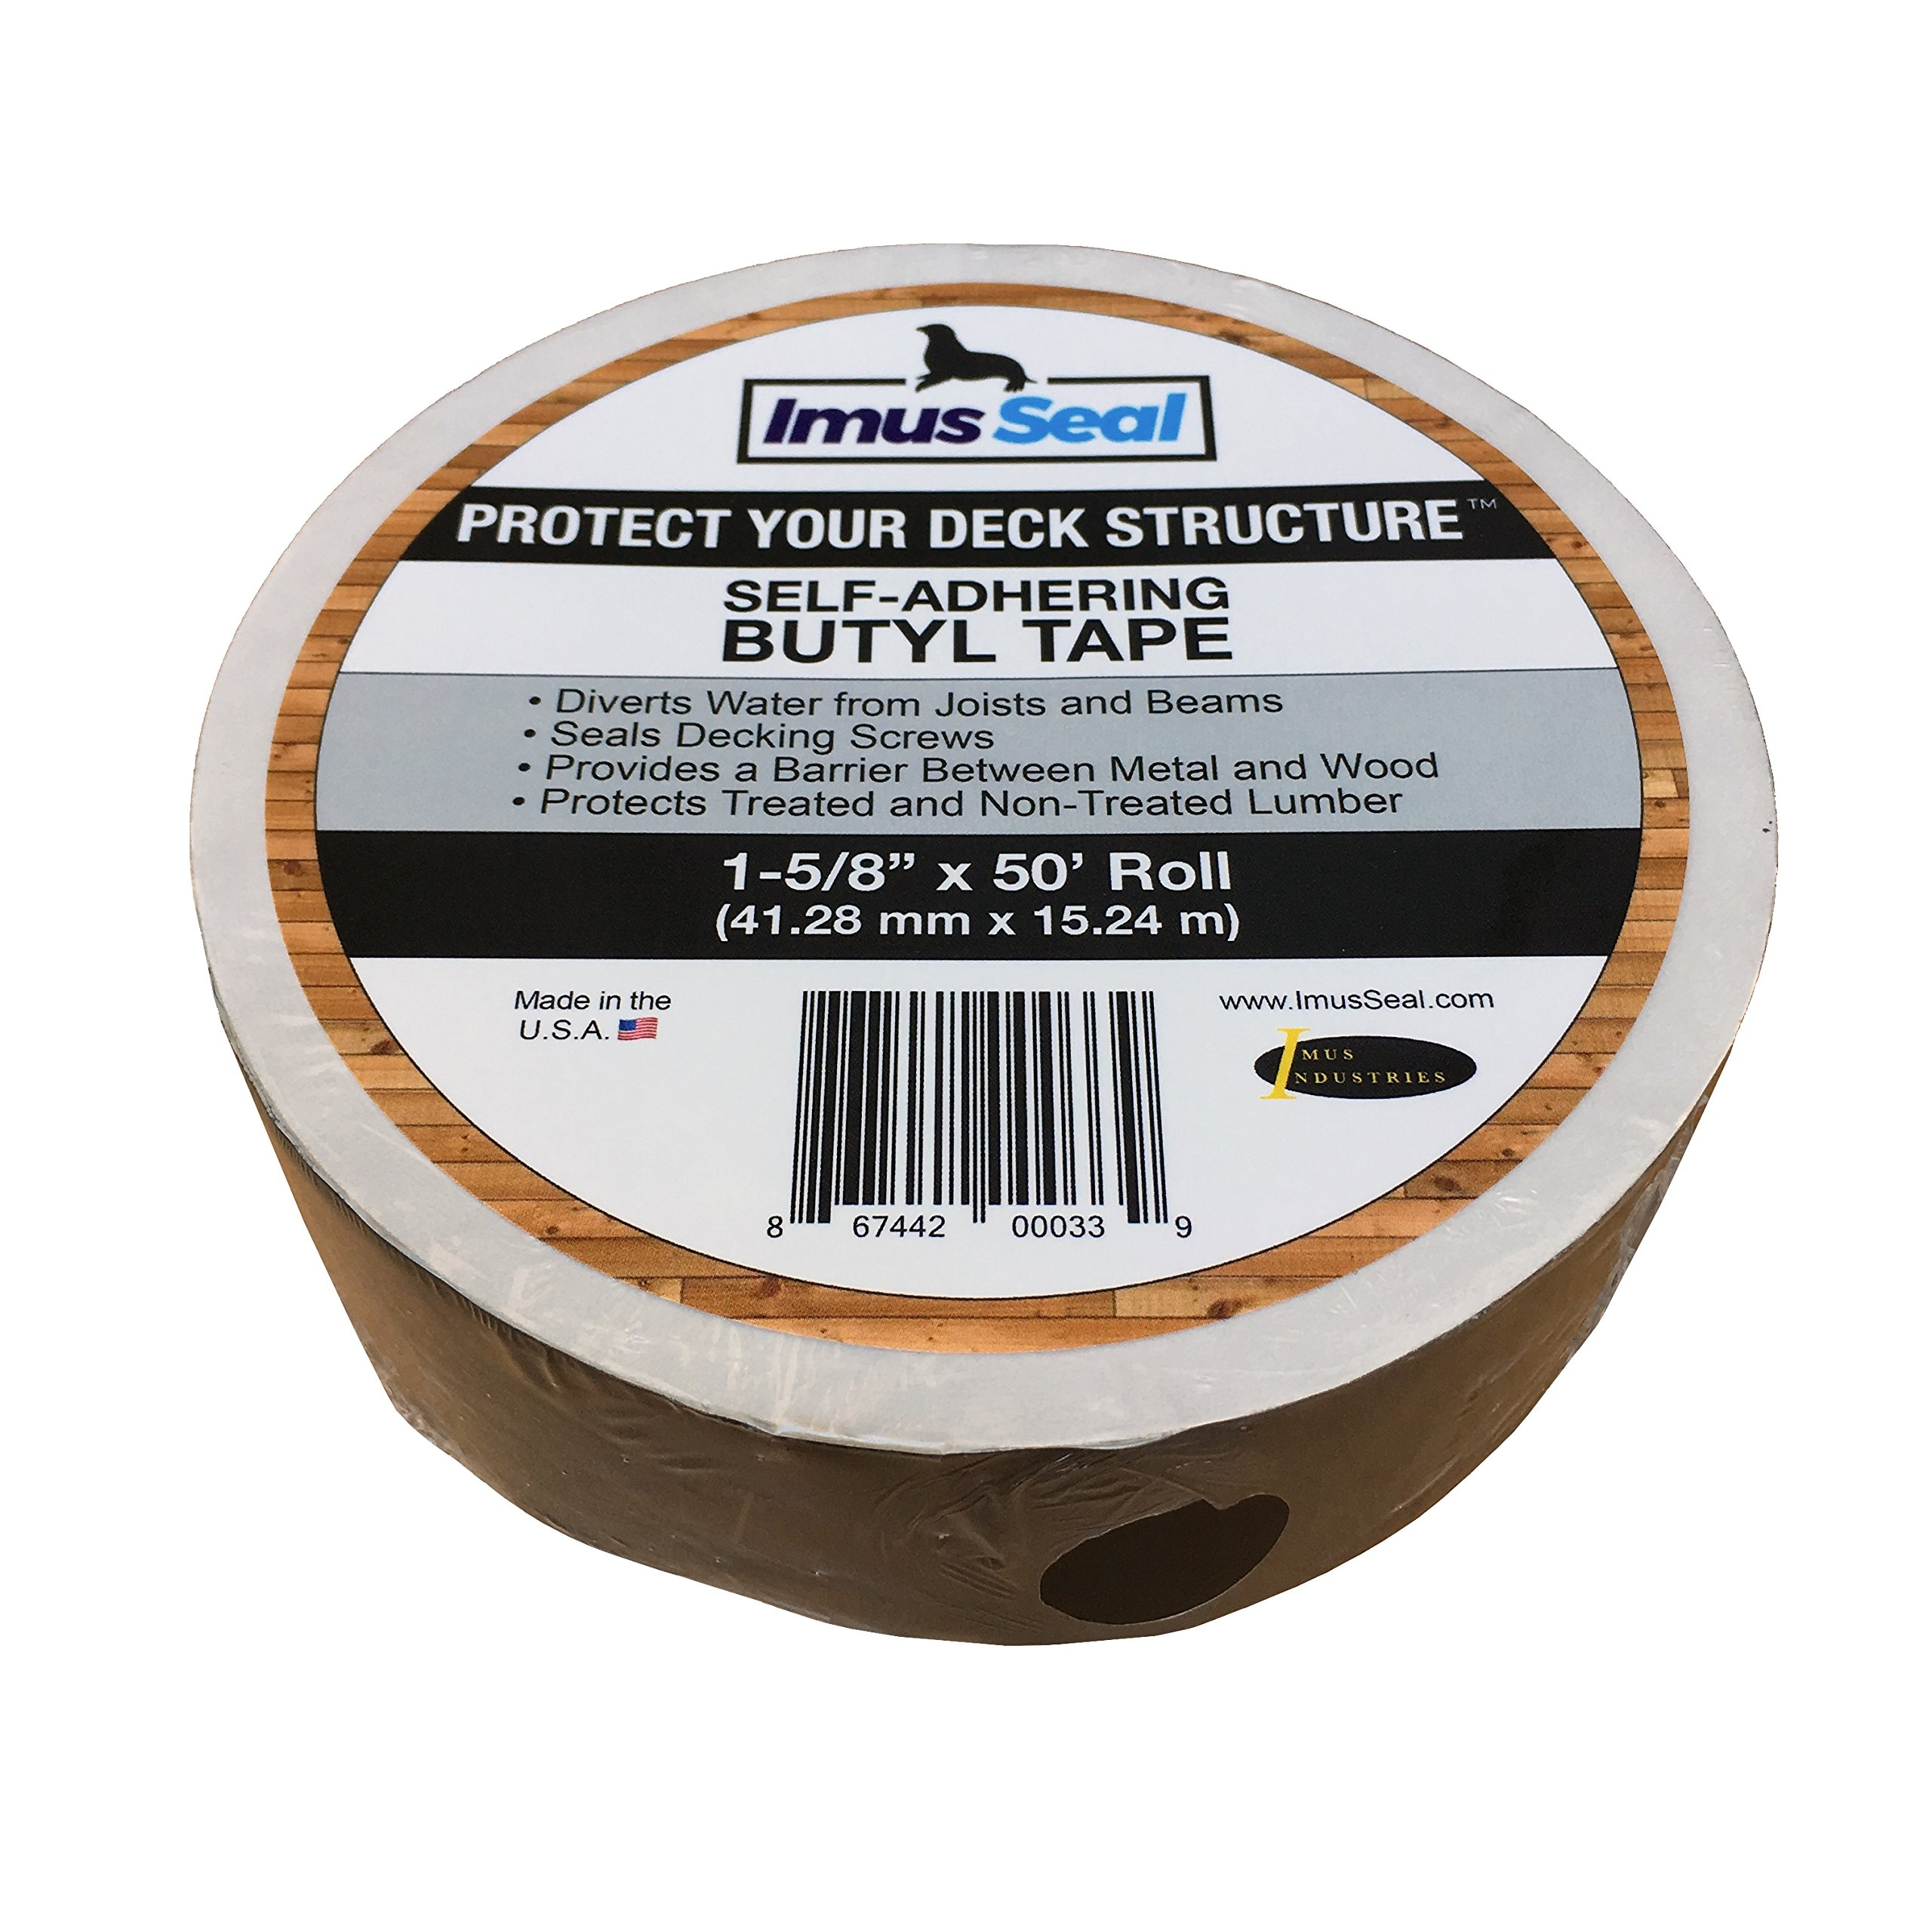 Imus Seal Butyl Tape for Flashing Deck Joists and Beams (1-5/8'' x 50' Roll)